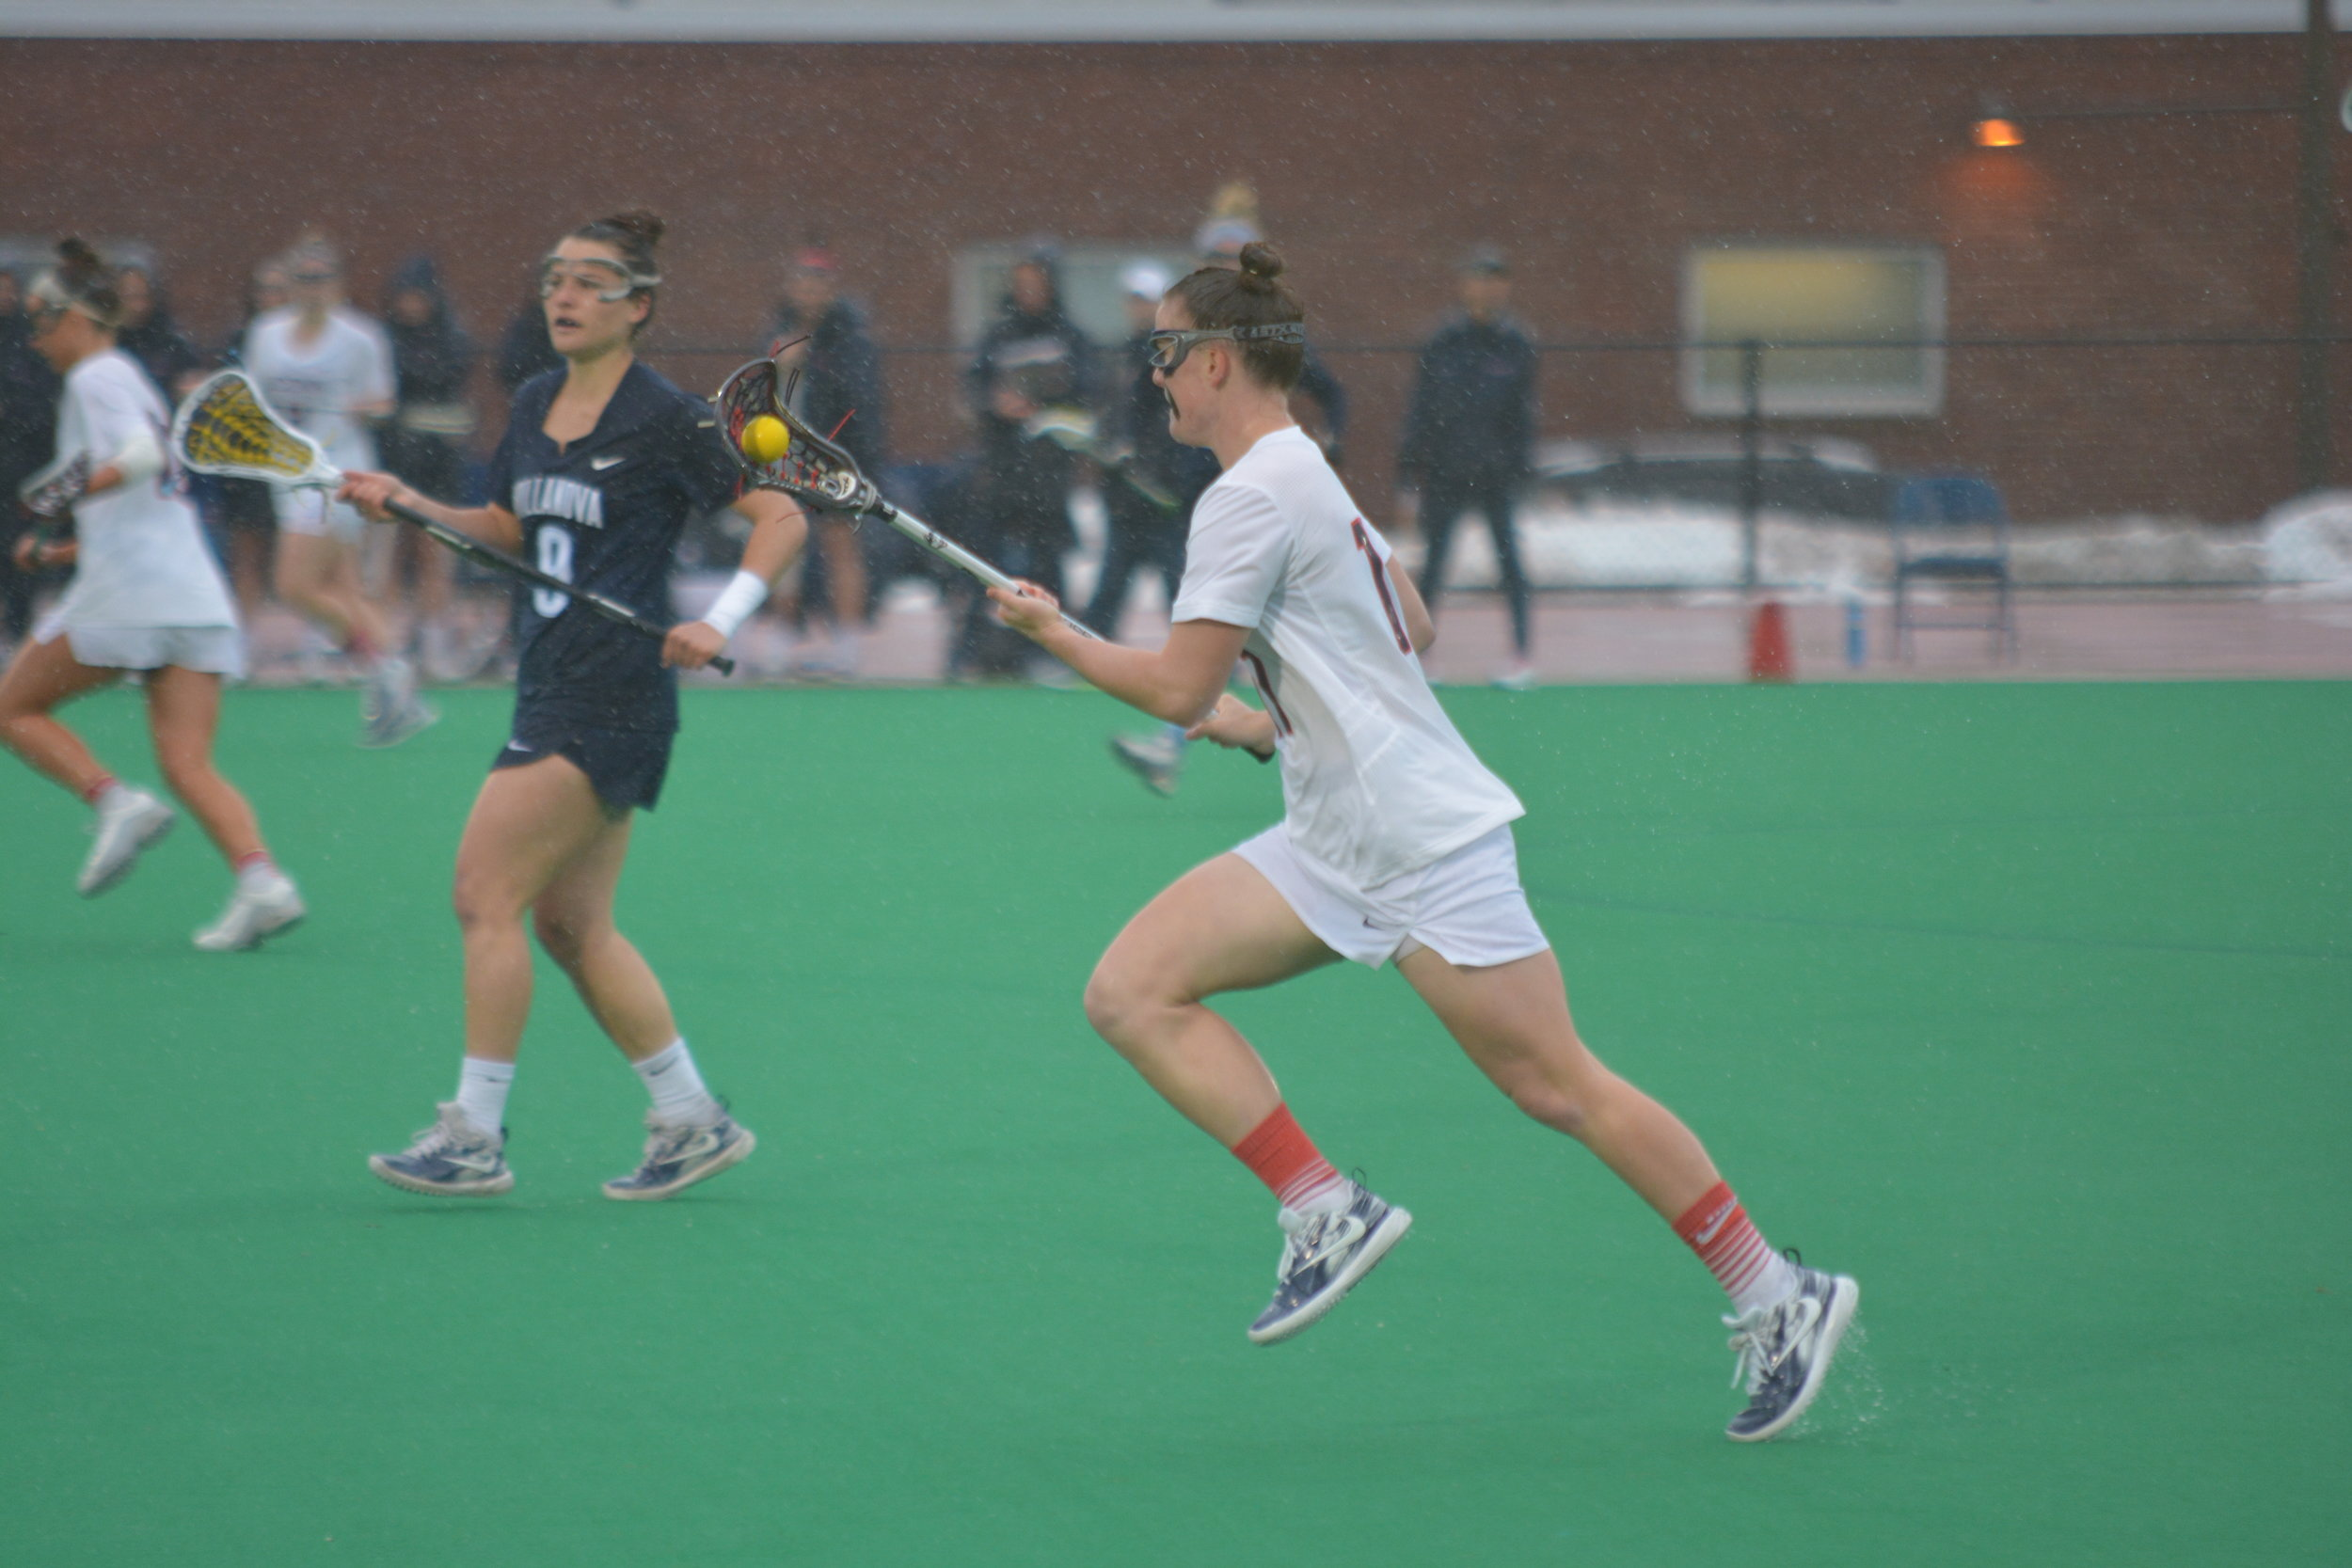 UConn Women's Lacrosse plays a tough game against Villanova in the rain Wednesday afternoon. (Nick Hampton/The Daily Campus)